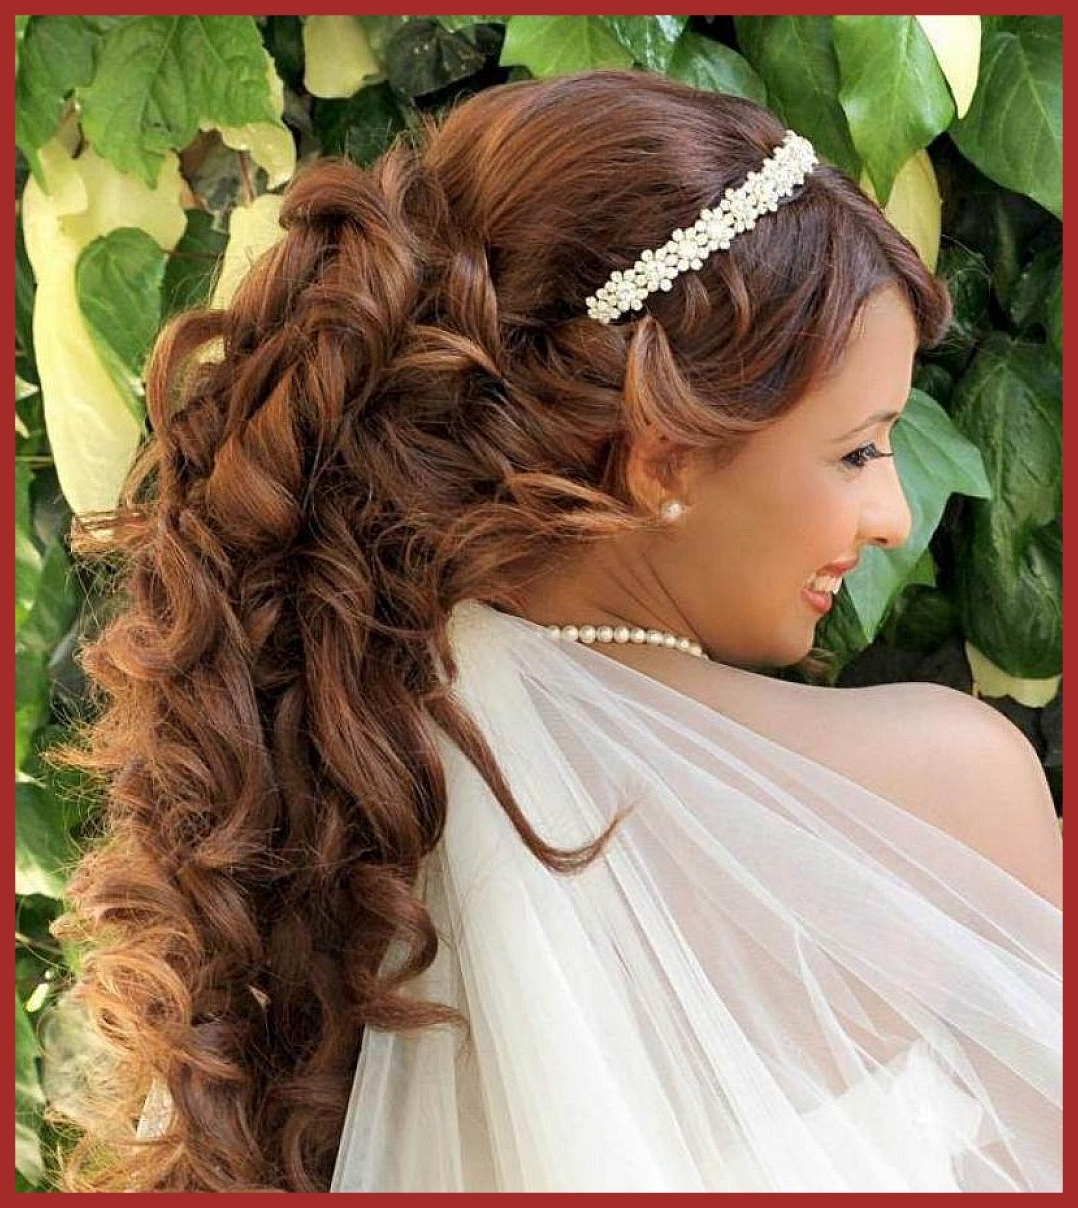 Inspiring Wedding Hairstyles For Long Hair Half Up With Tiara Eve Within Latest Wedding Hairstyles For Long Hair With A Tiara (View 5 of 15)